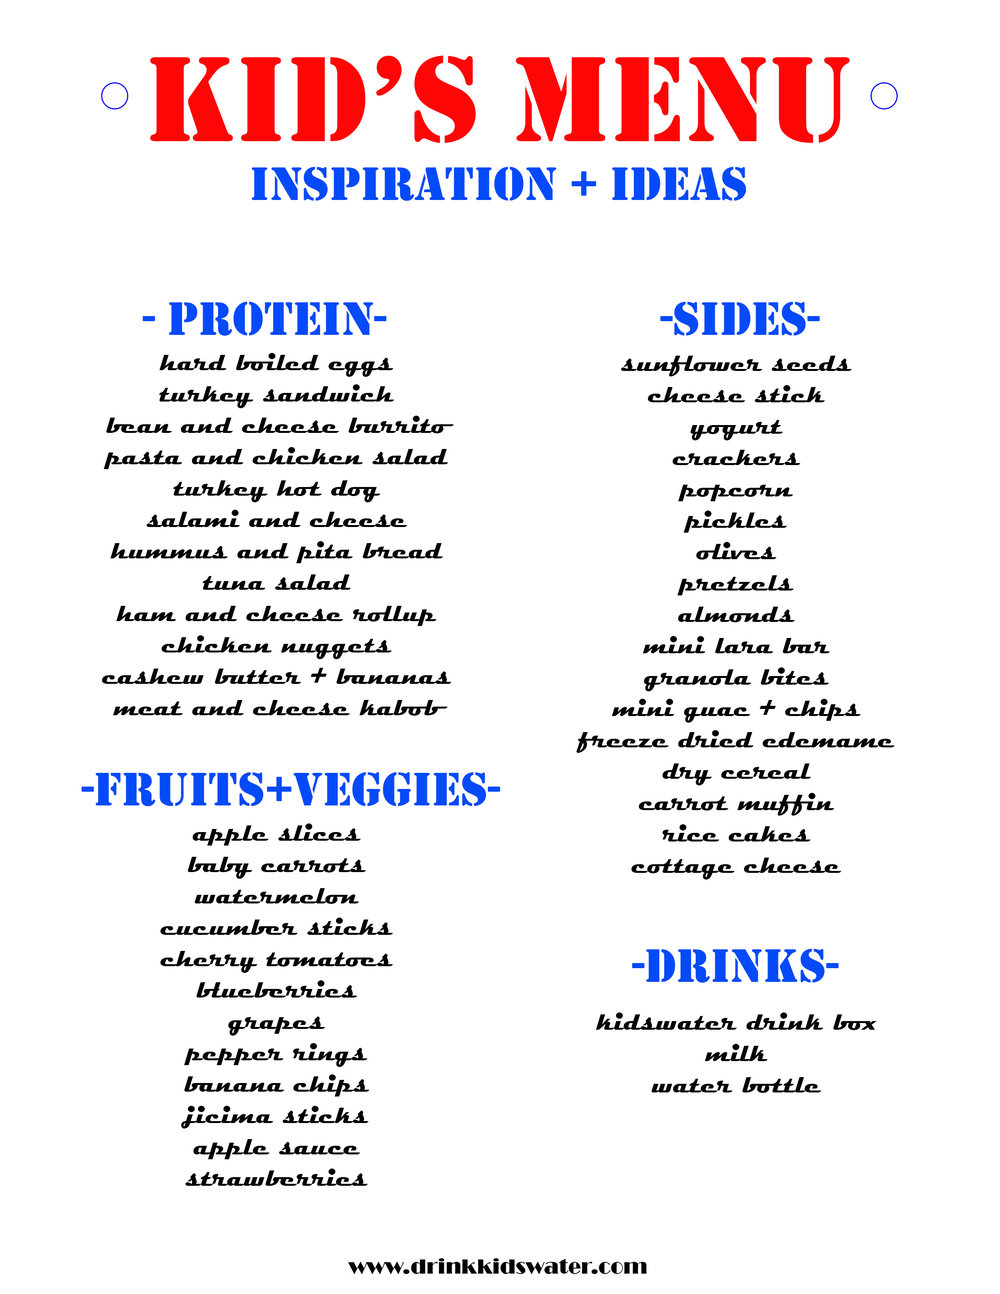 Kids Menu Lunch Inspiration and Ideas.jpg